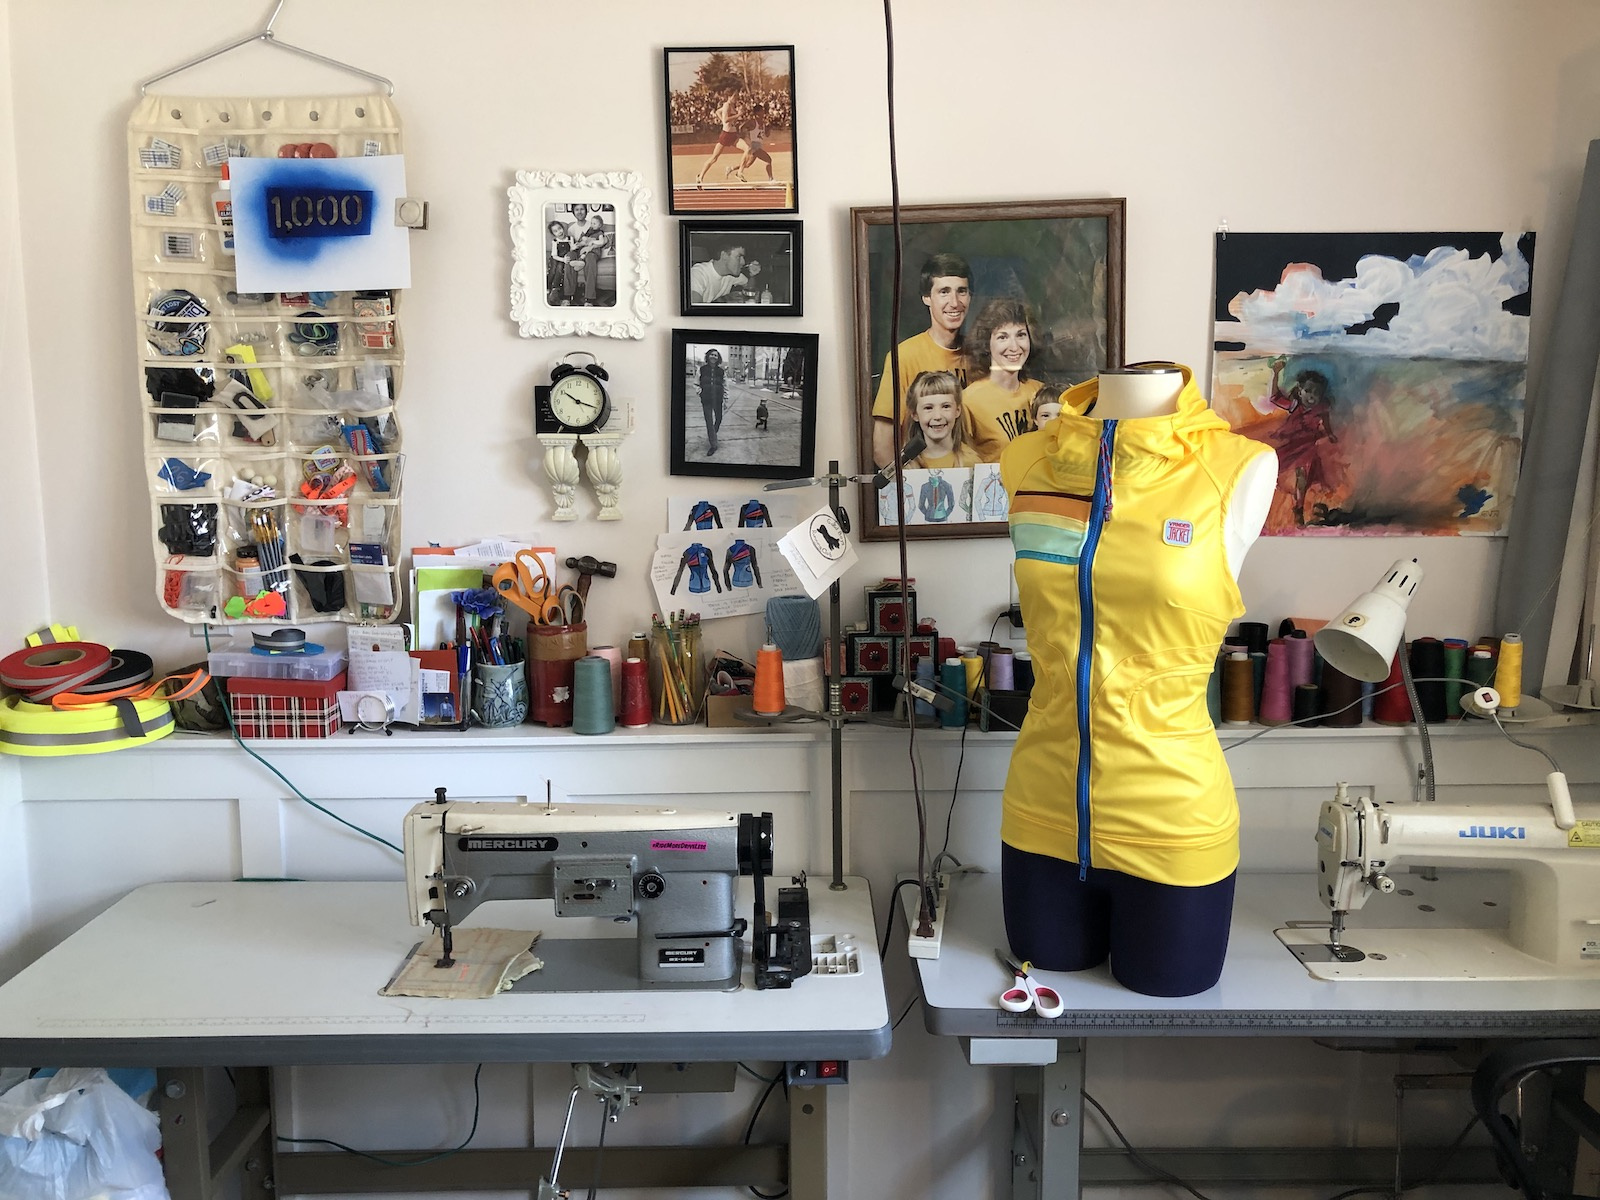 Vander Neut's home studio, complete with sewing machines and family photos